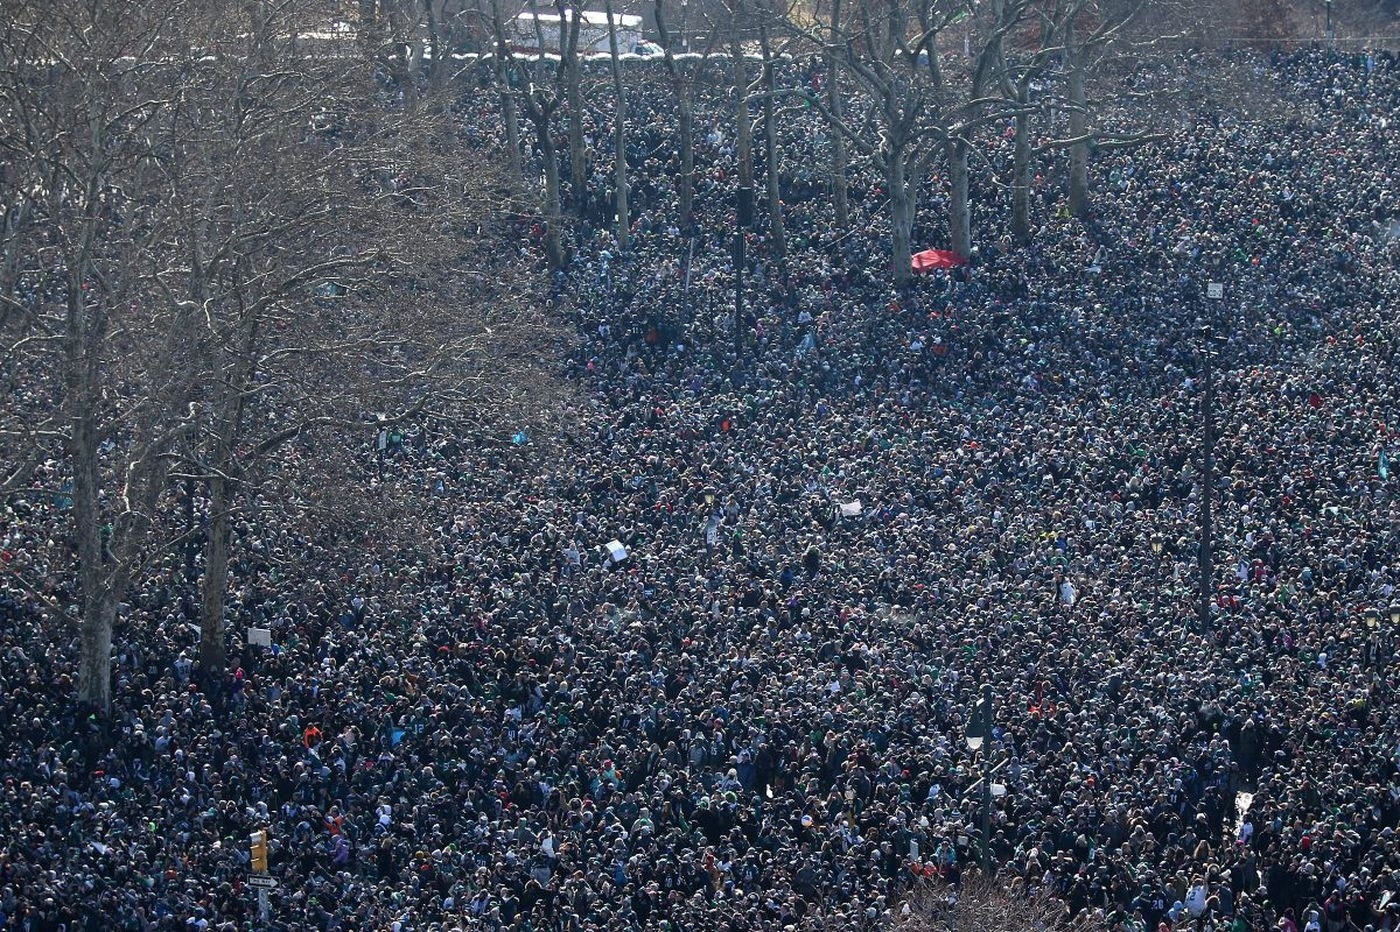 Eagles Parade Attendance: Close To 700,000, Experts Say pertaining to Super Bowl Attendance 2018